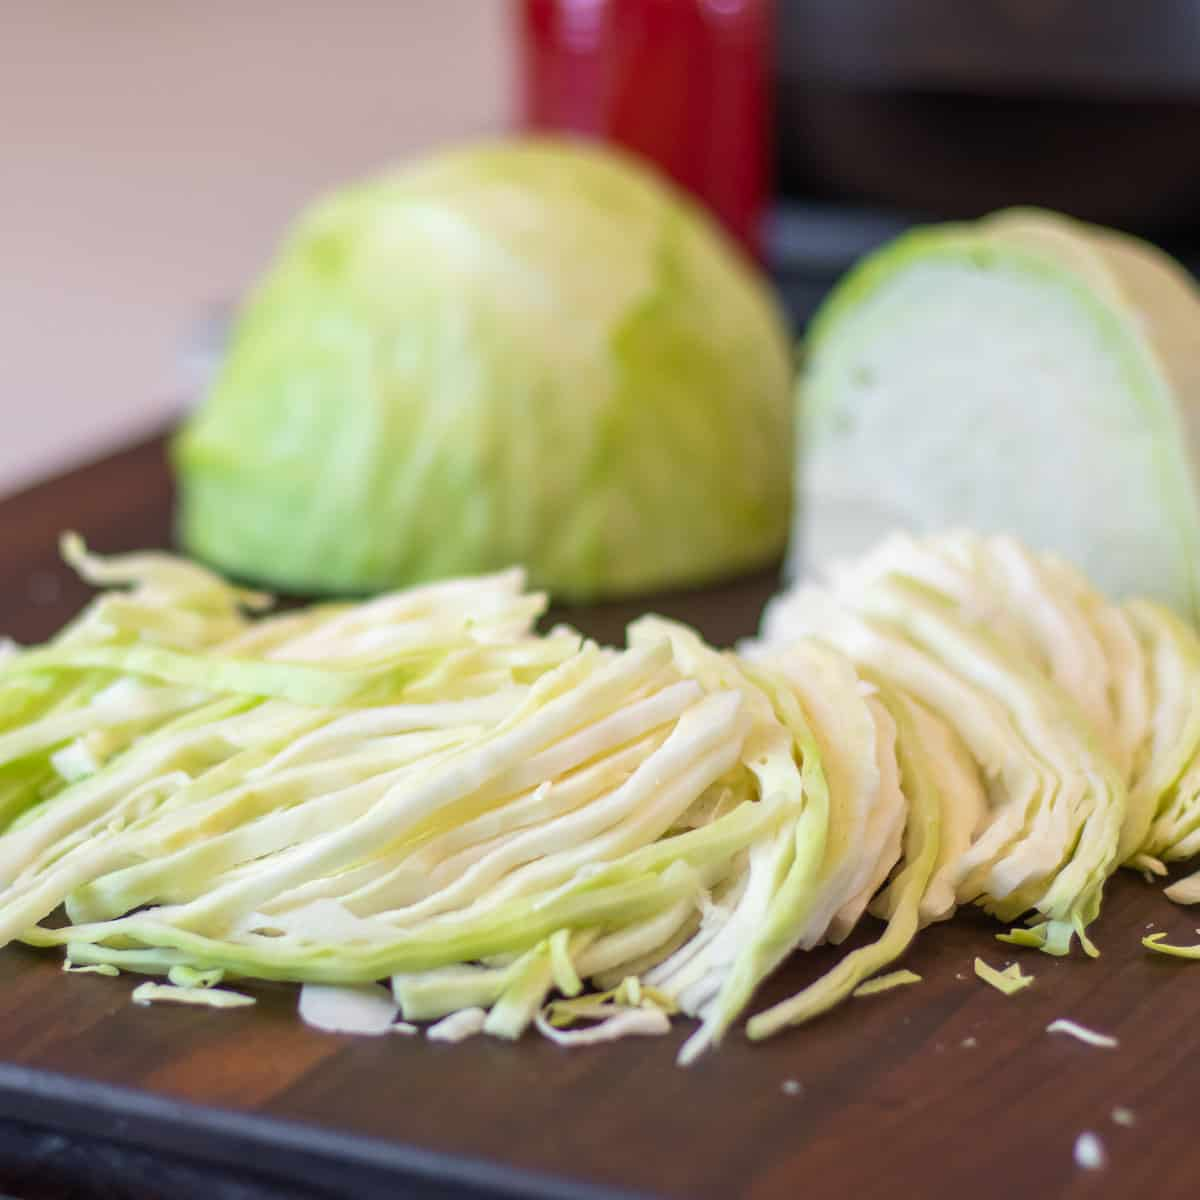 Slicing cabbage on a cutting board.